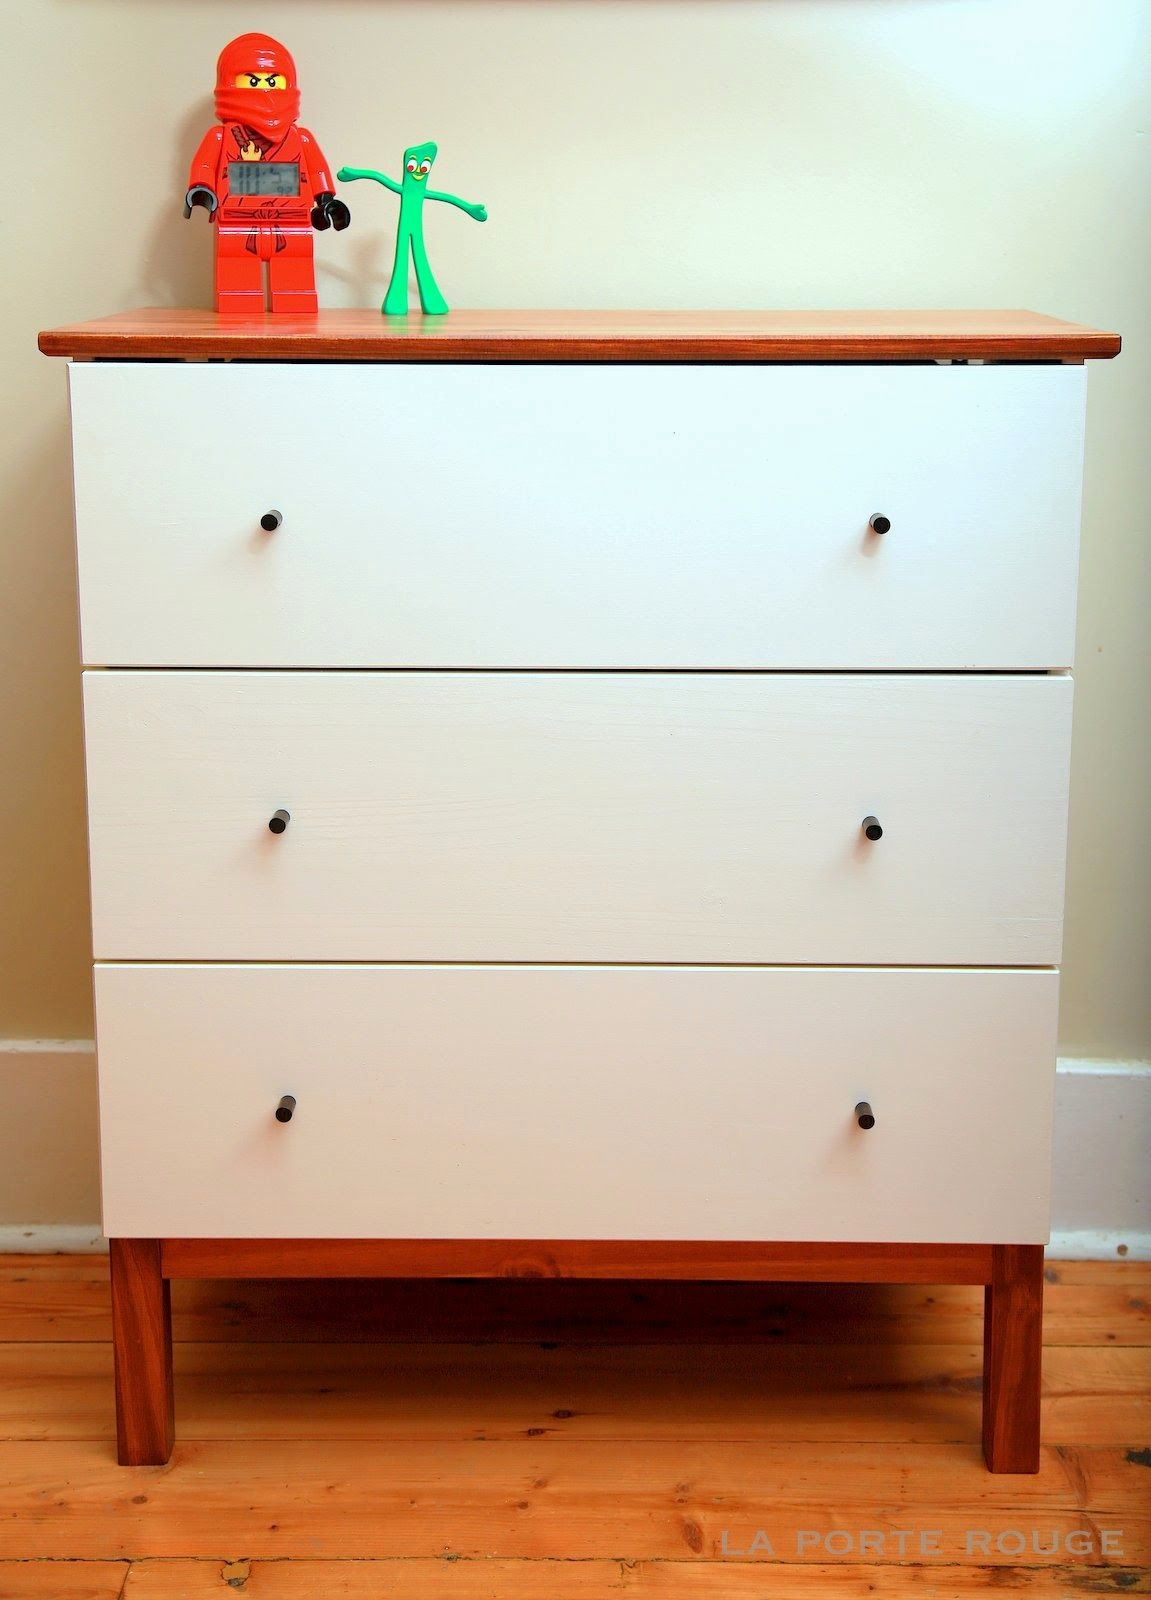 diy ikea hack tarva dresser diy pinterest ikea hack dresser and dresser makeovers. Black Bedroom Furniture Sets. Home Design Ideas